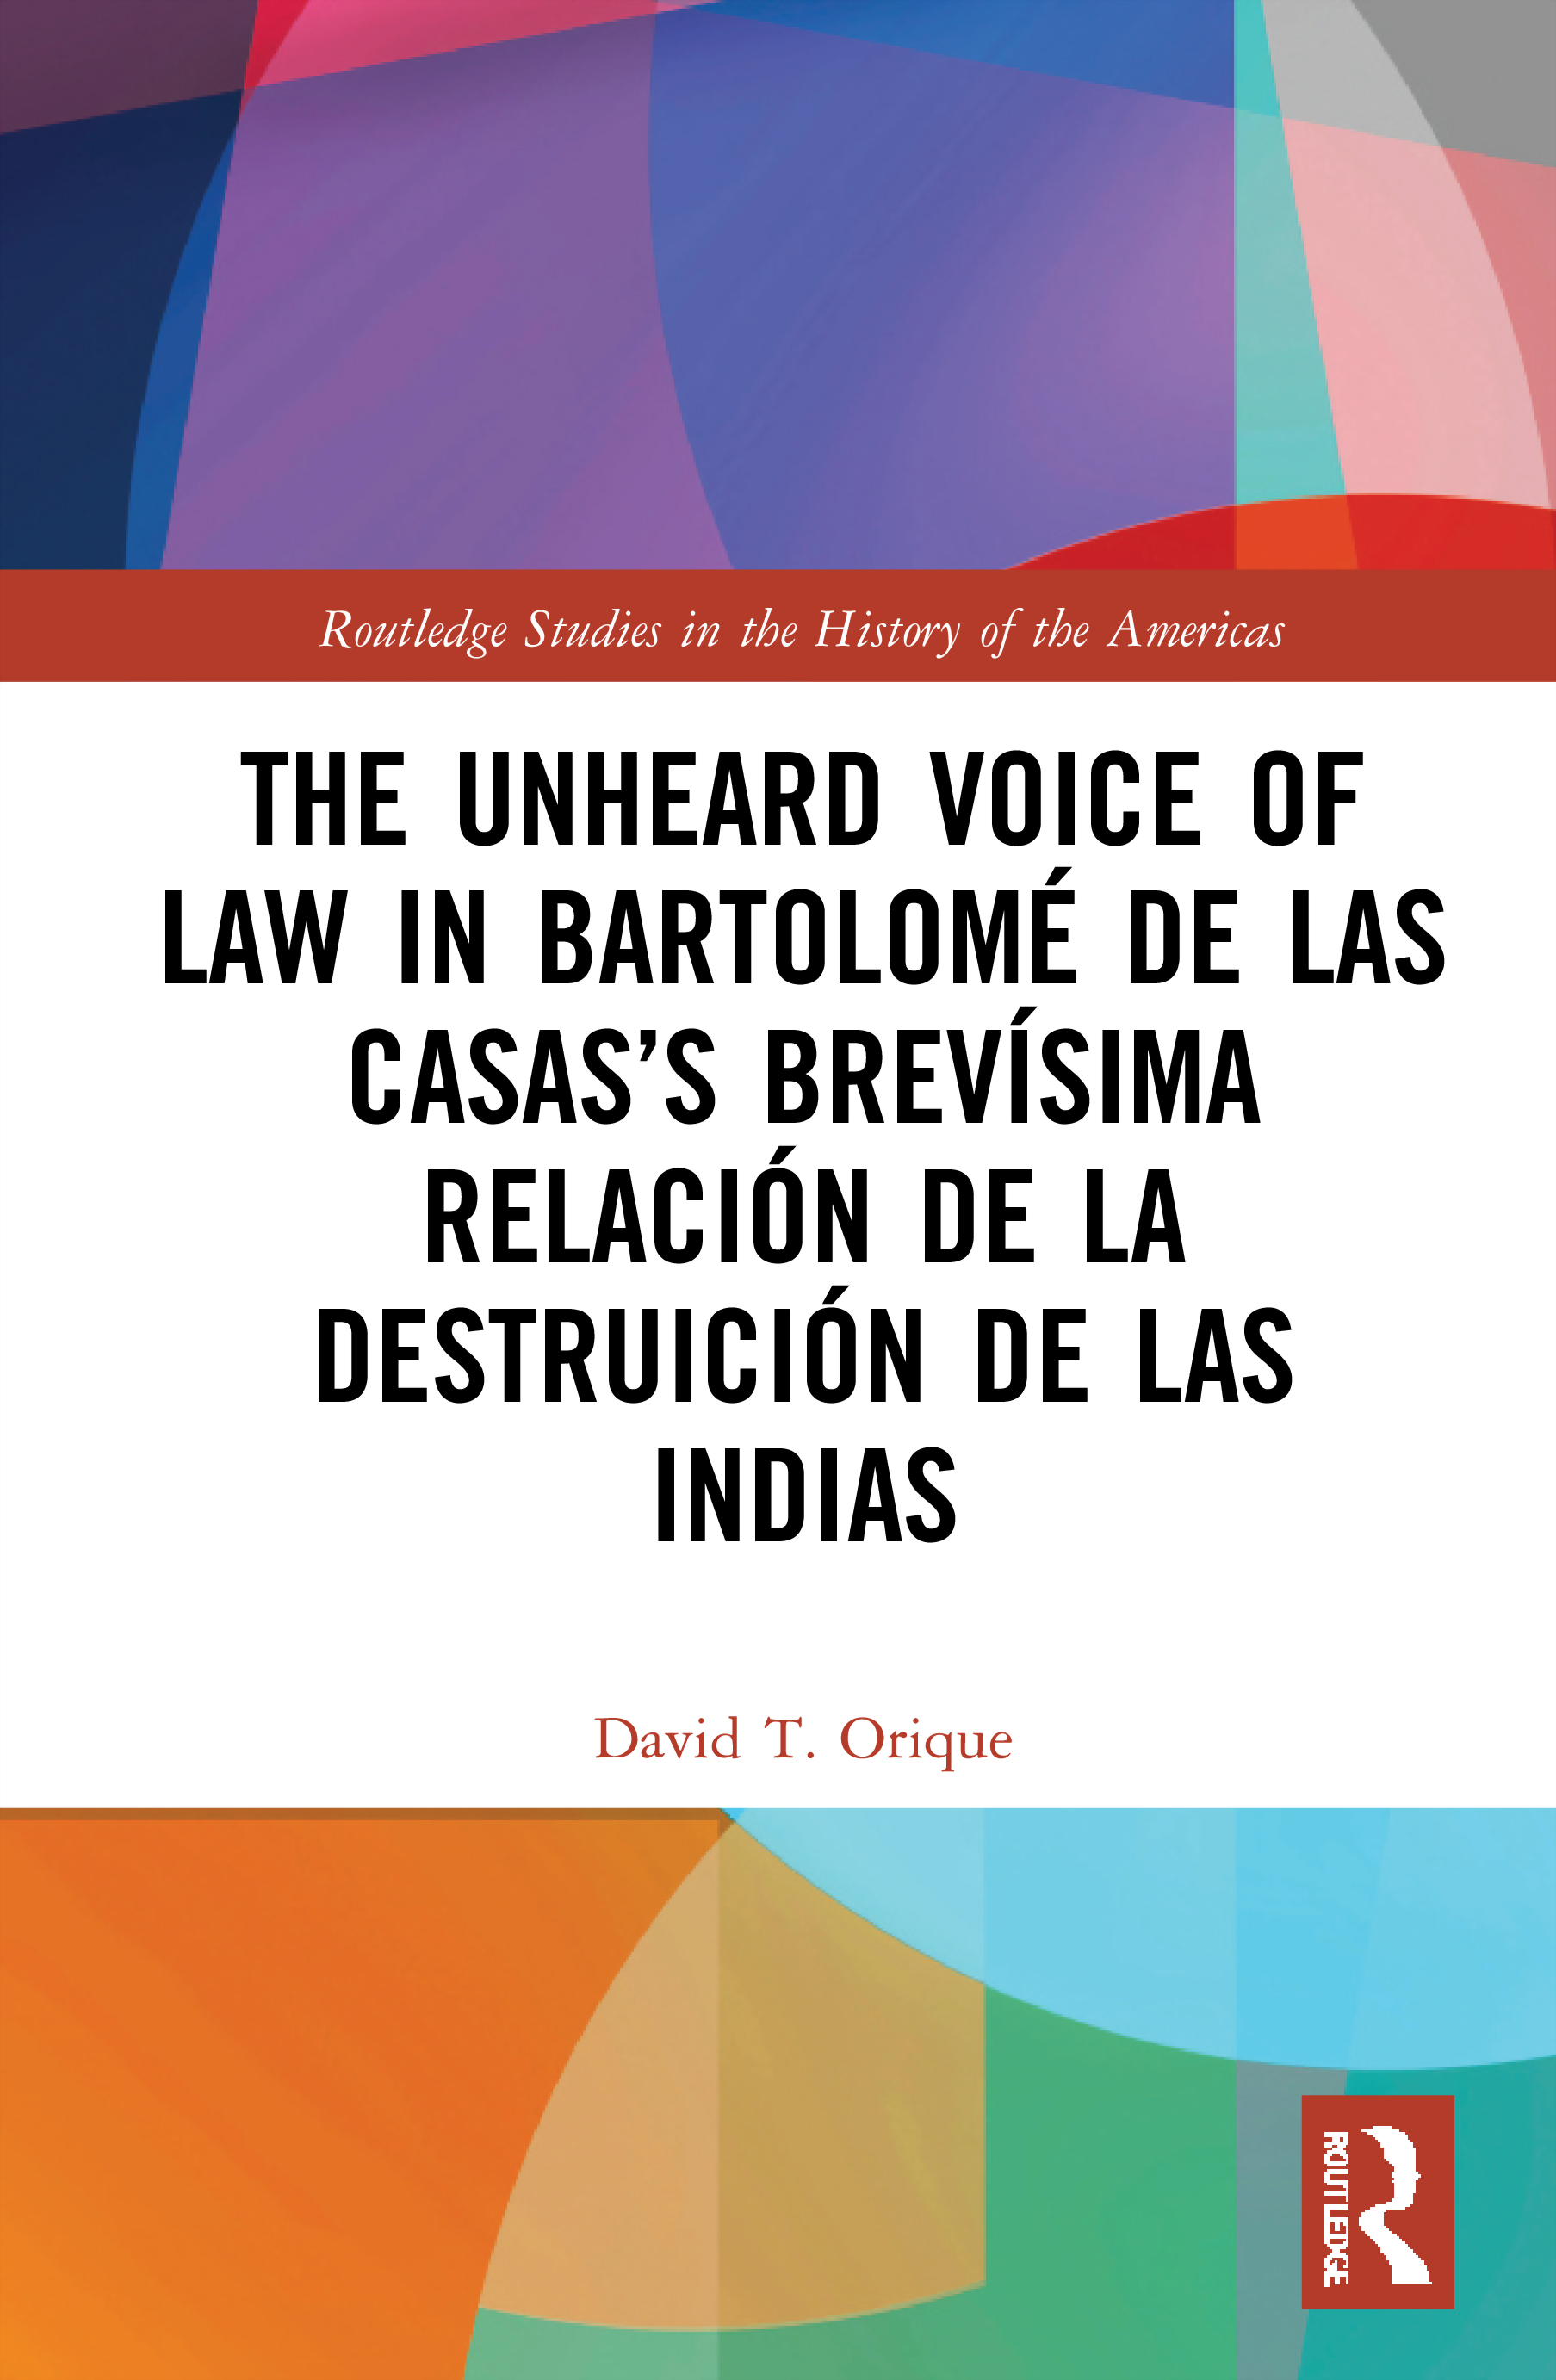 The Articulation of Las Casas's Juridical Voice